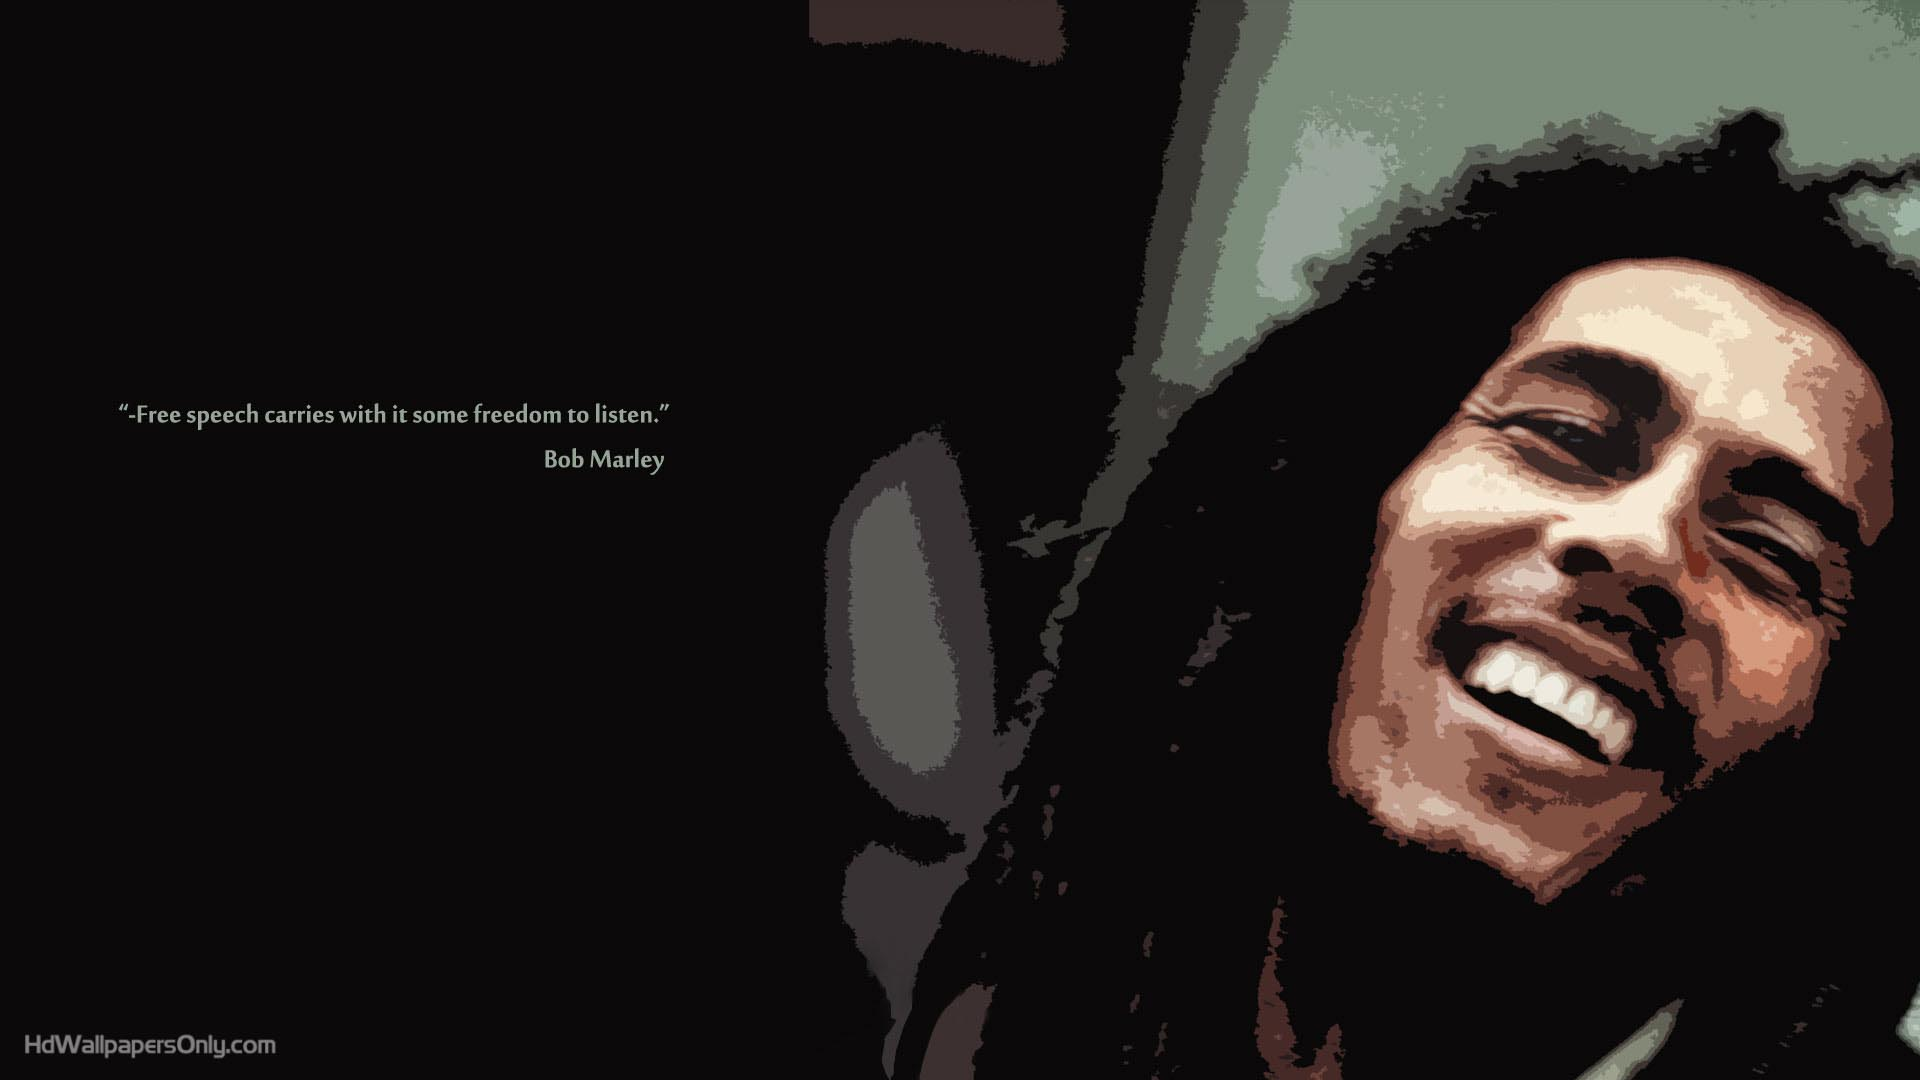 Wallpapers For > Bob Marley Wallpapers Widescreen